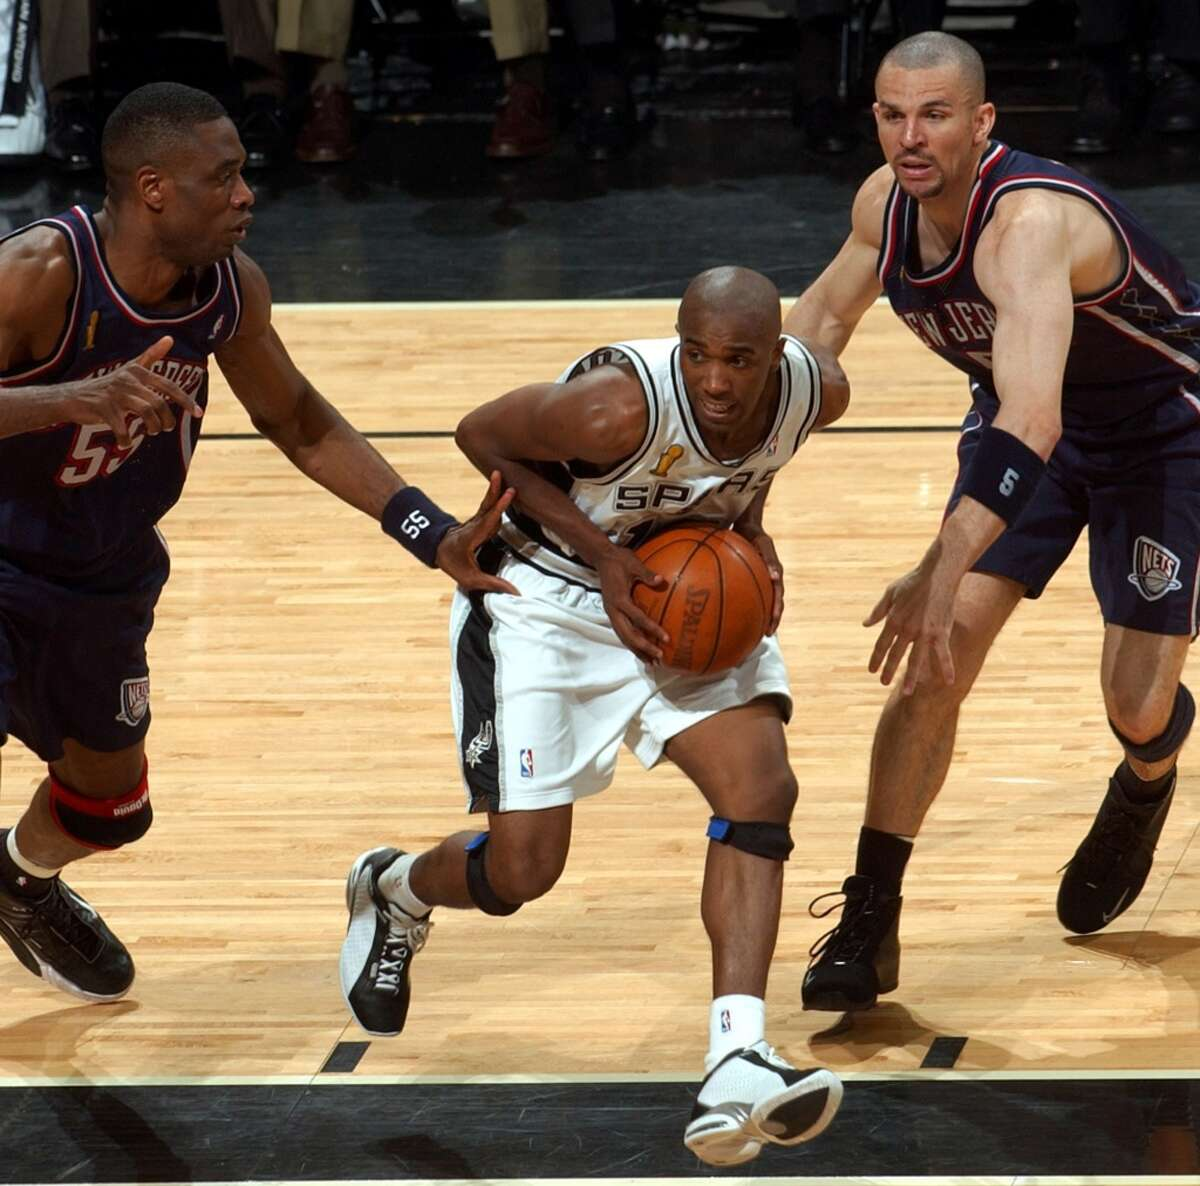 9. Speedy saves the day Game 6, 2003 NBA Finals, vs. Nets